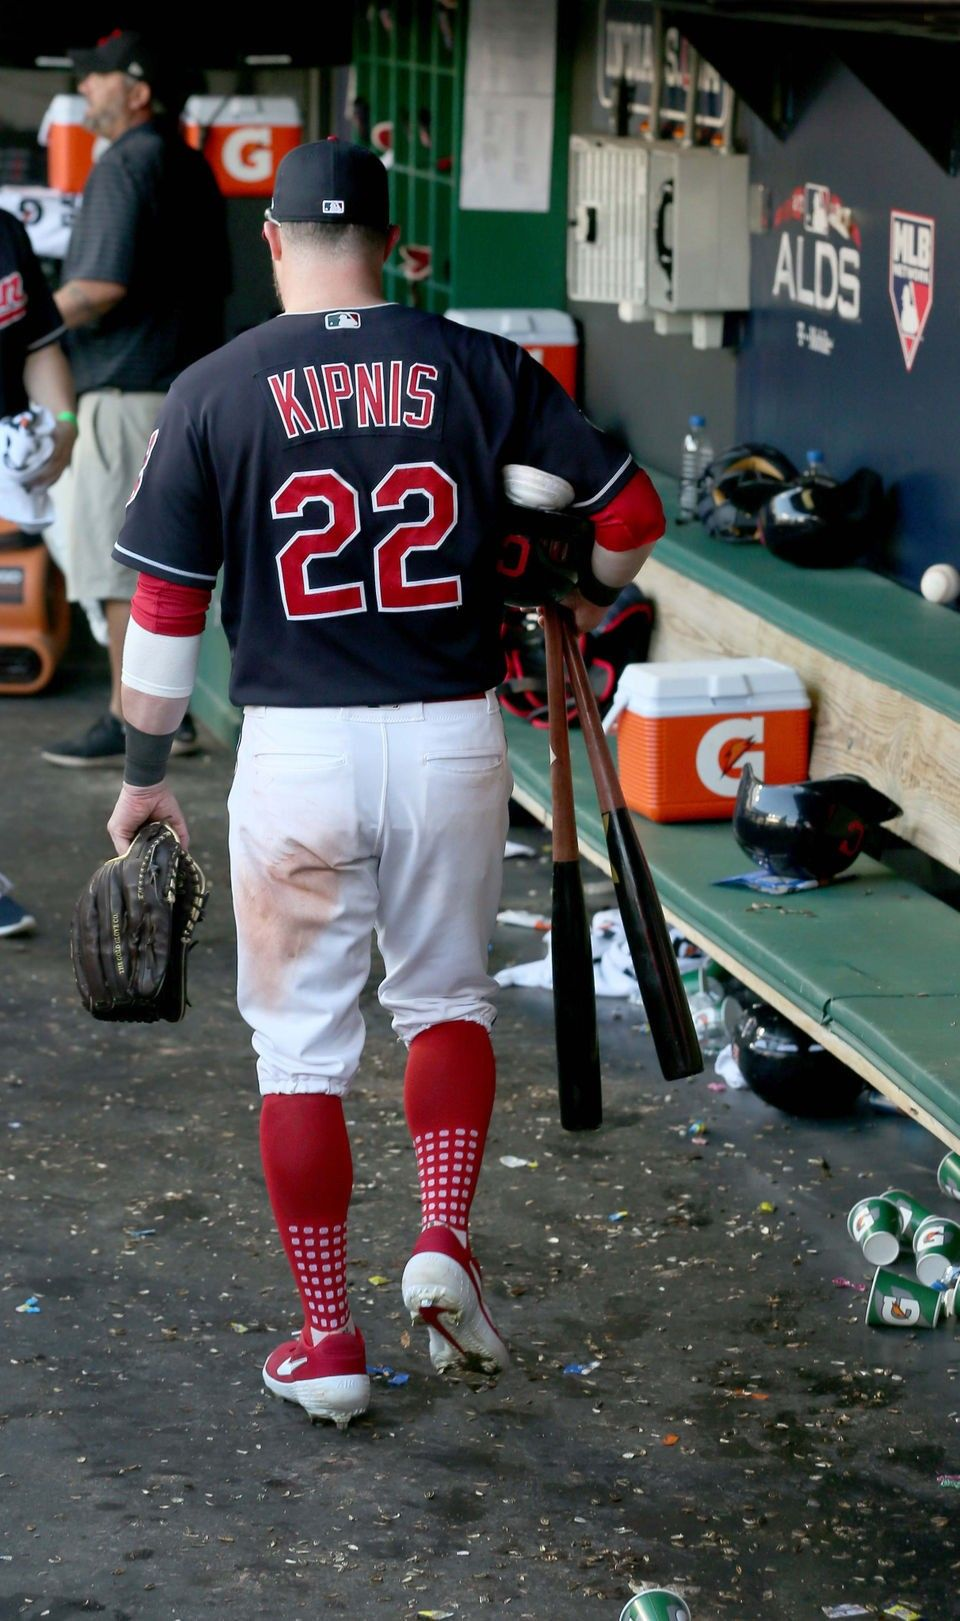 Cleveland Indians Jason Kipnis Grabbed His Baseball Gear In The Dugout And Headed To To The Locker Room A Youth Baseball Gloves Cleveland Indians Baseball Gear